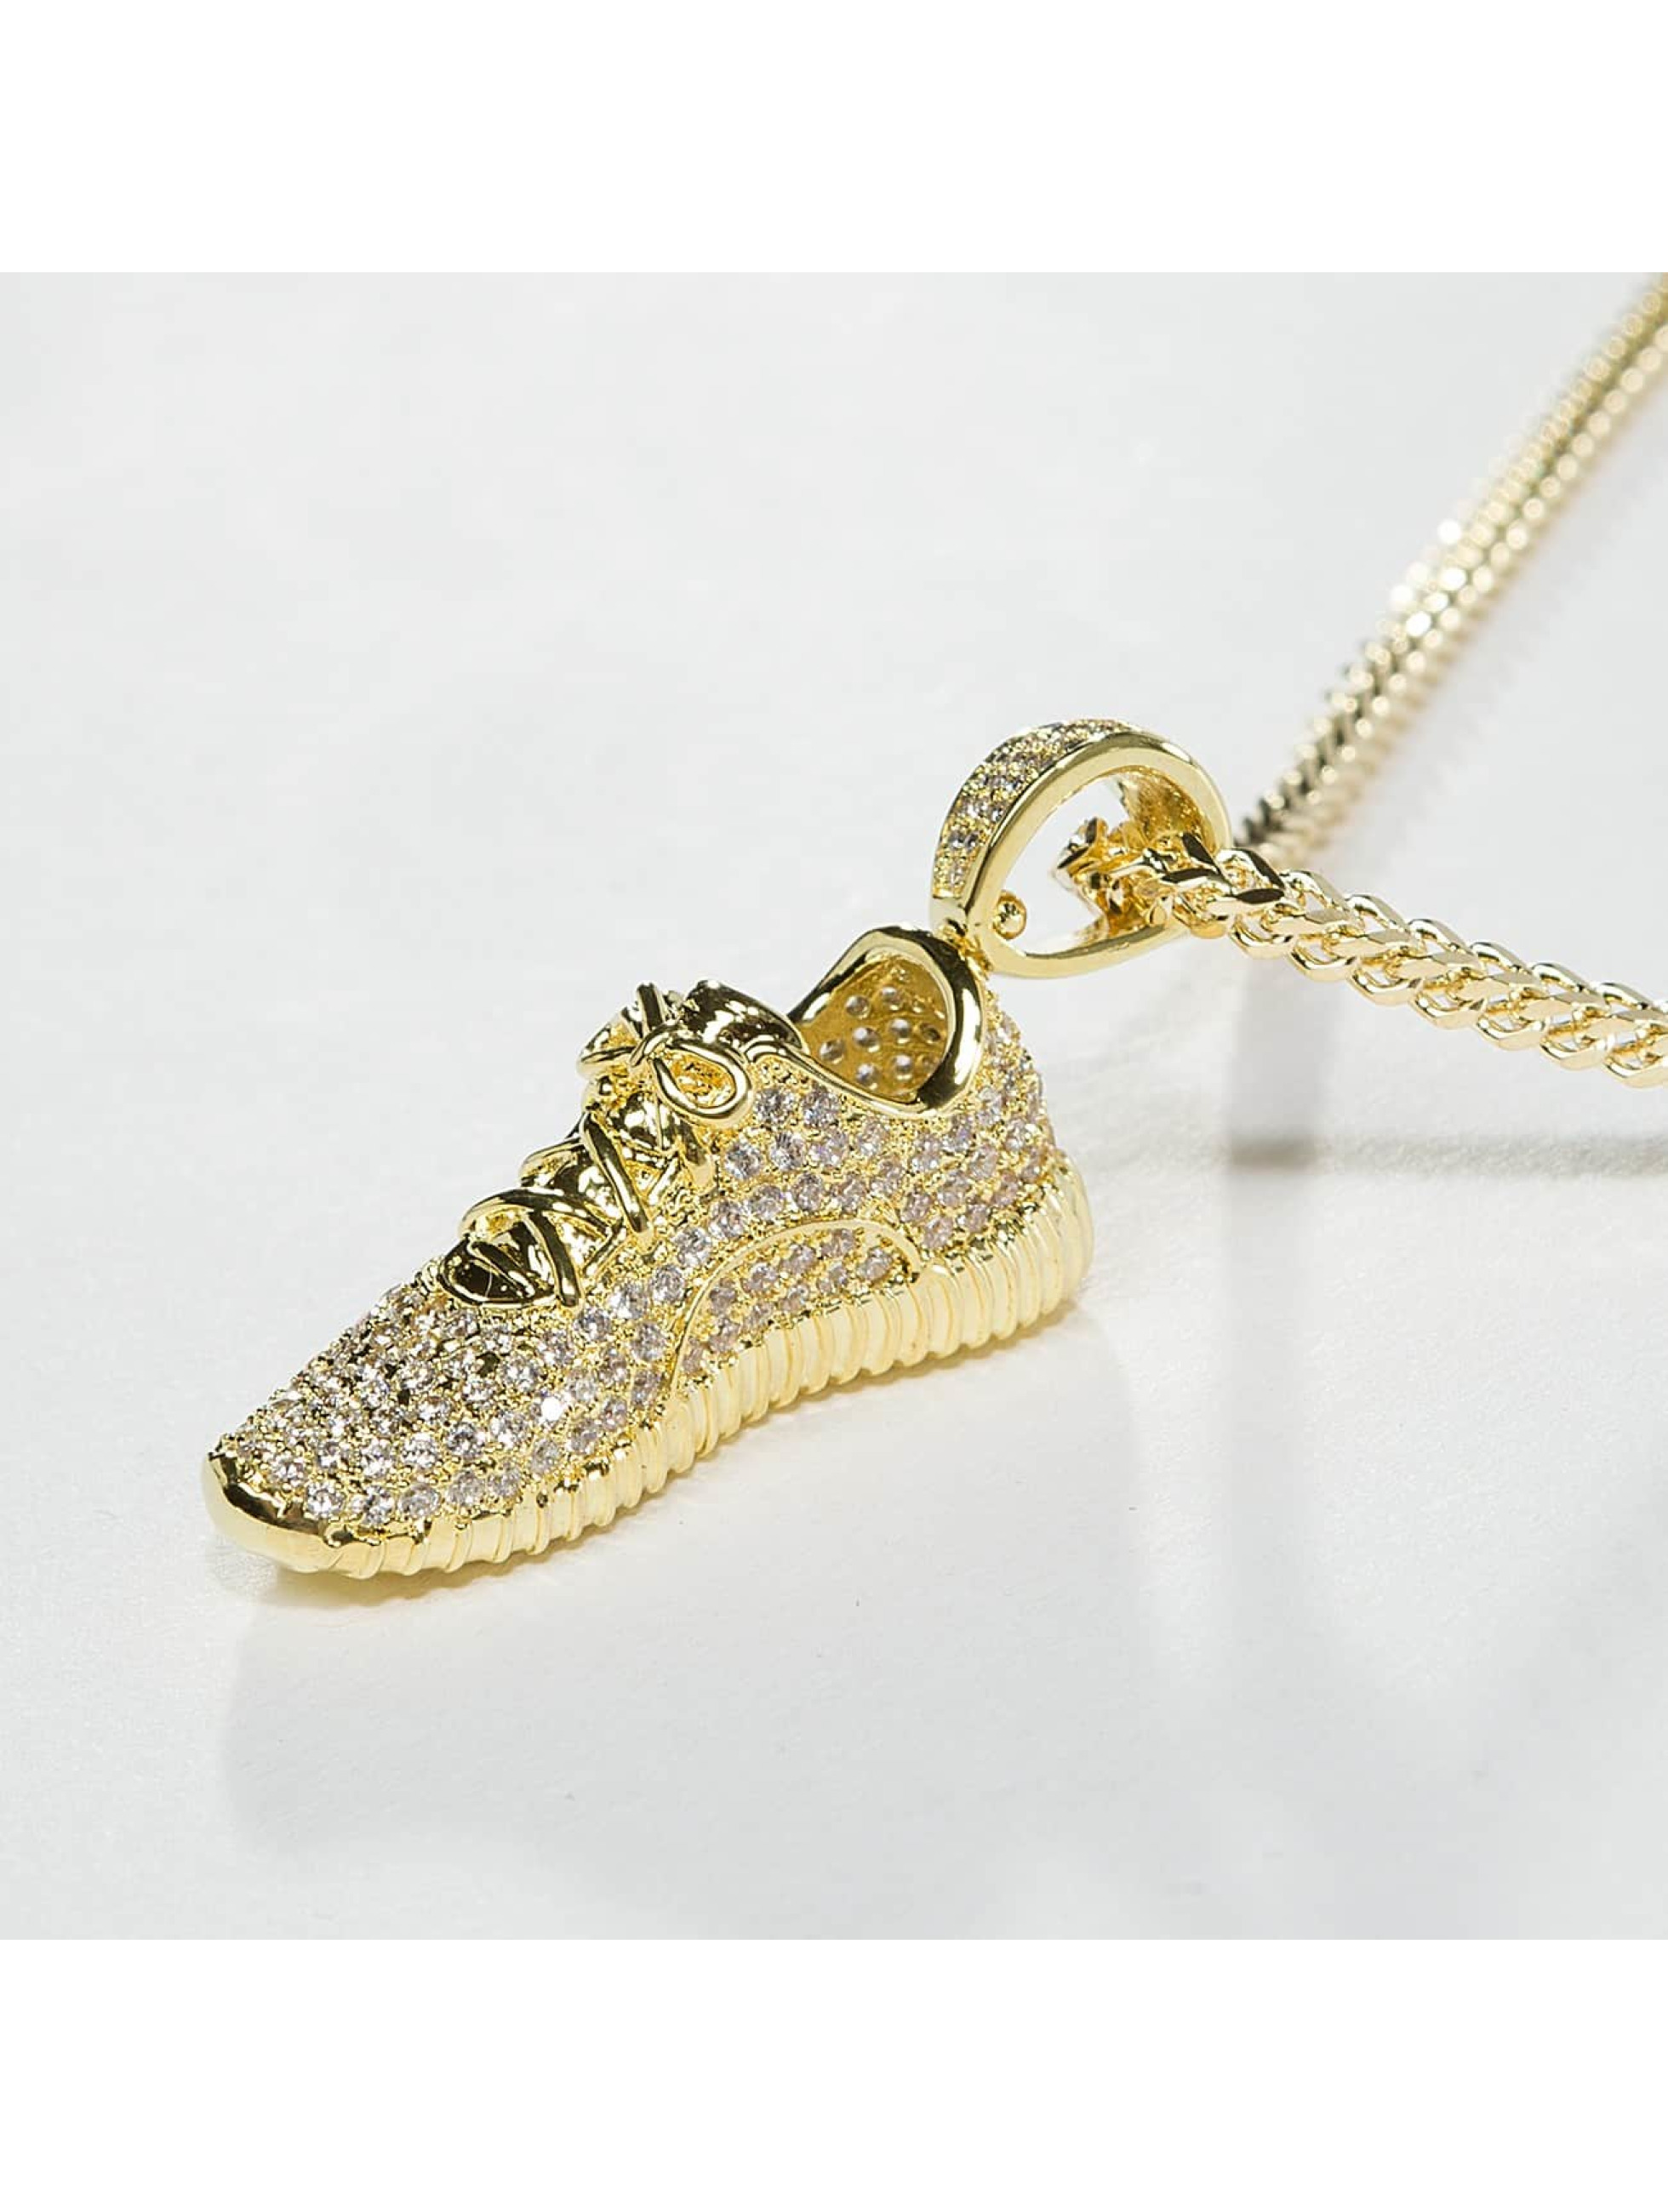 KING ICE Collier Gold_Plated CZ Lifestyle Sneaker or